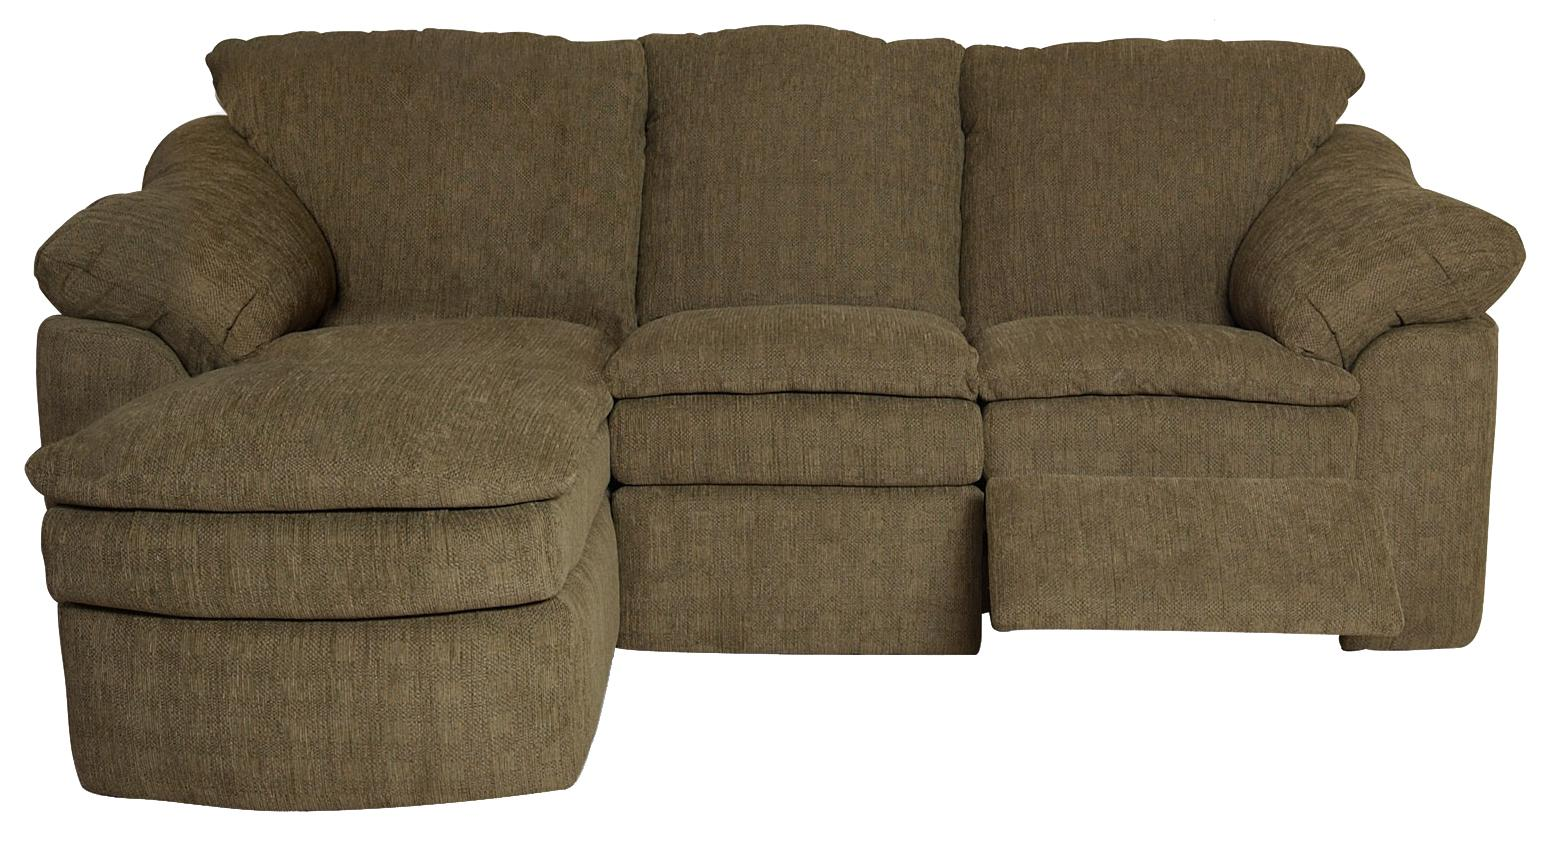 England Seneca Falls Three Piece Reclining Sectional - Item Number: 7300-06+39+57